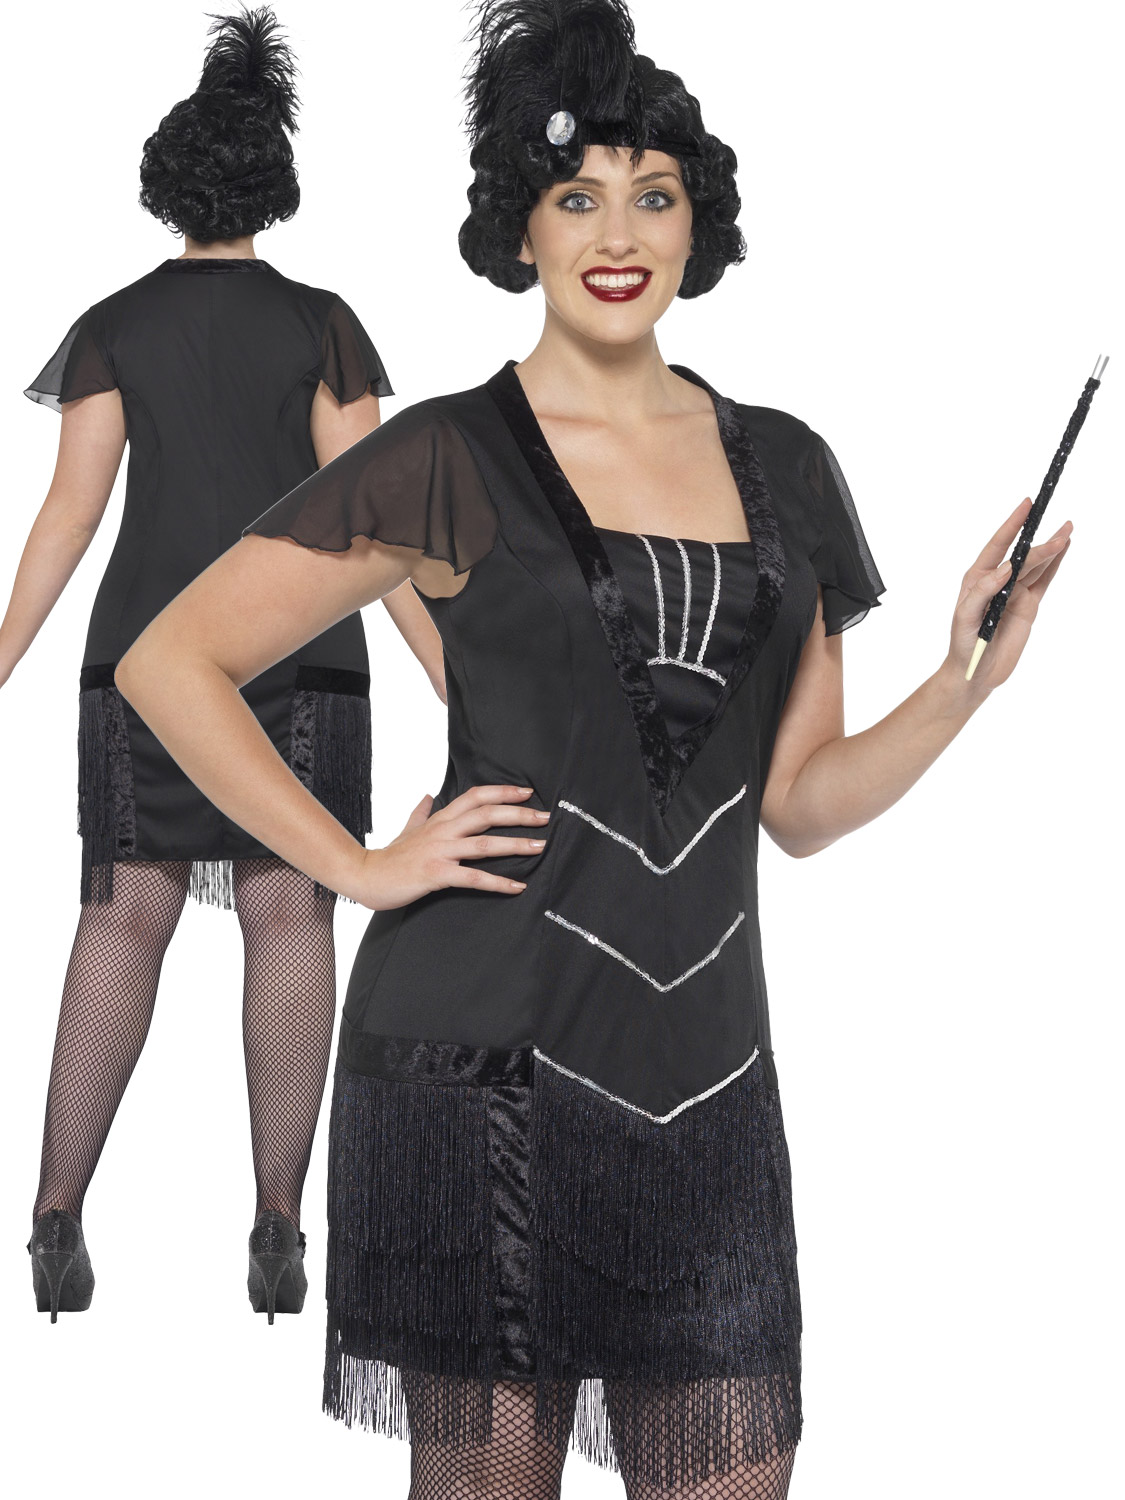 Ladies curves flapper costume adult charleston fancy dress plus size transform yourself into a sexy 1920s flapper with this ladies curves dress ideal if you are going to a great gatsby themed party solutioingenieria